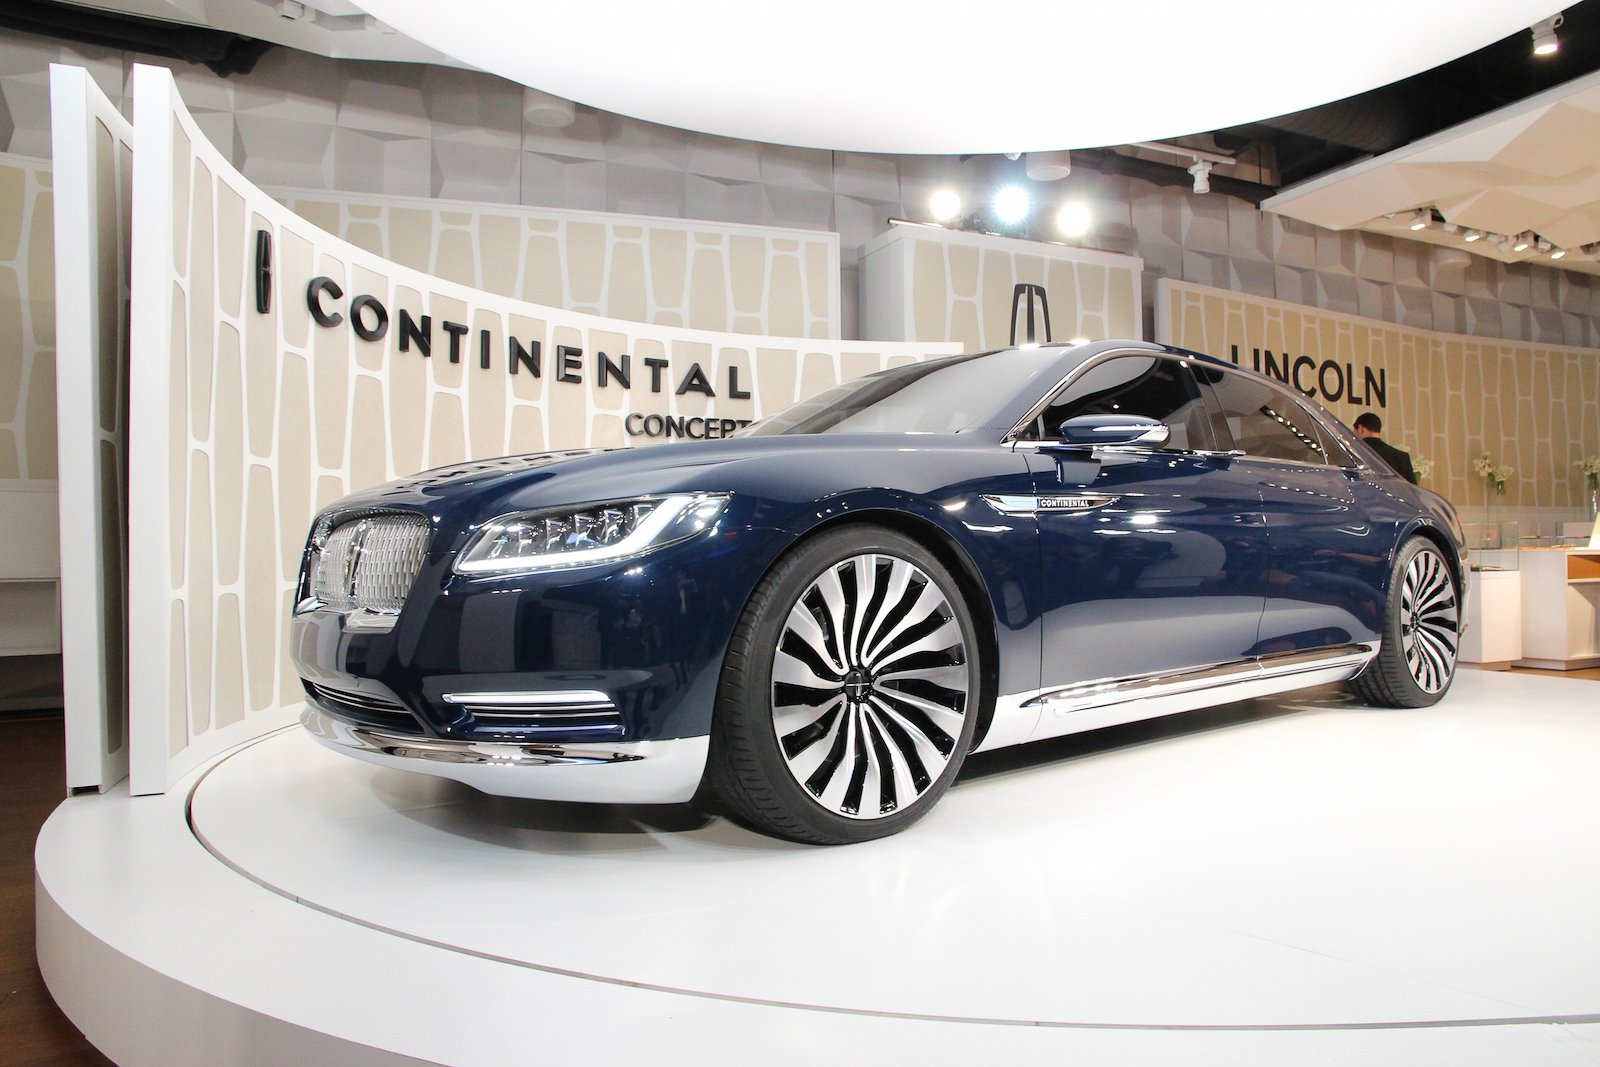 2015 - [Lincoln] Continental Lincoln-continental-concept-unveiling-new-york-city-march-29-2015_100505972_h